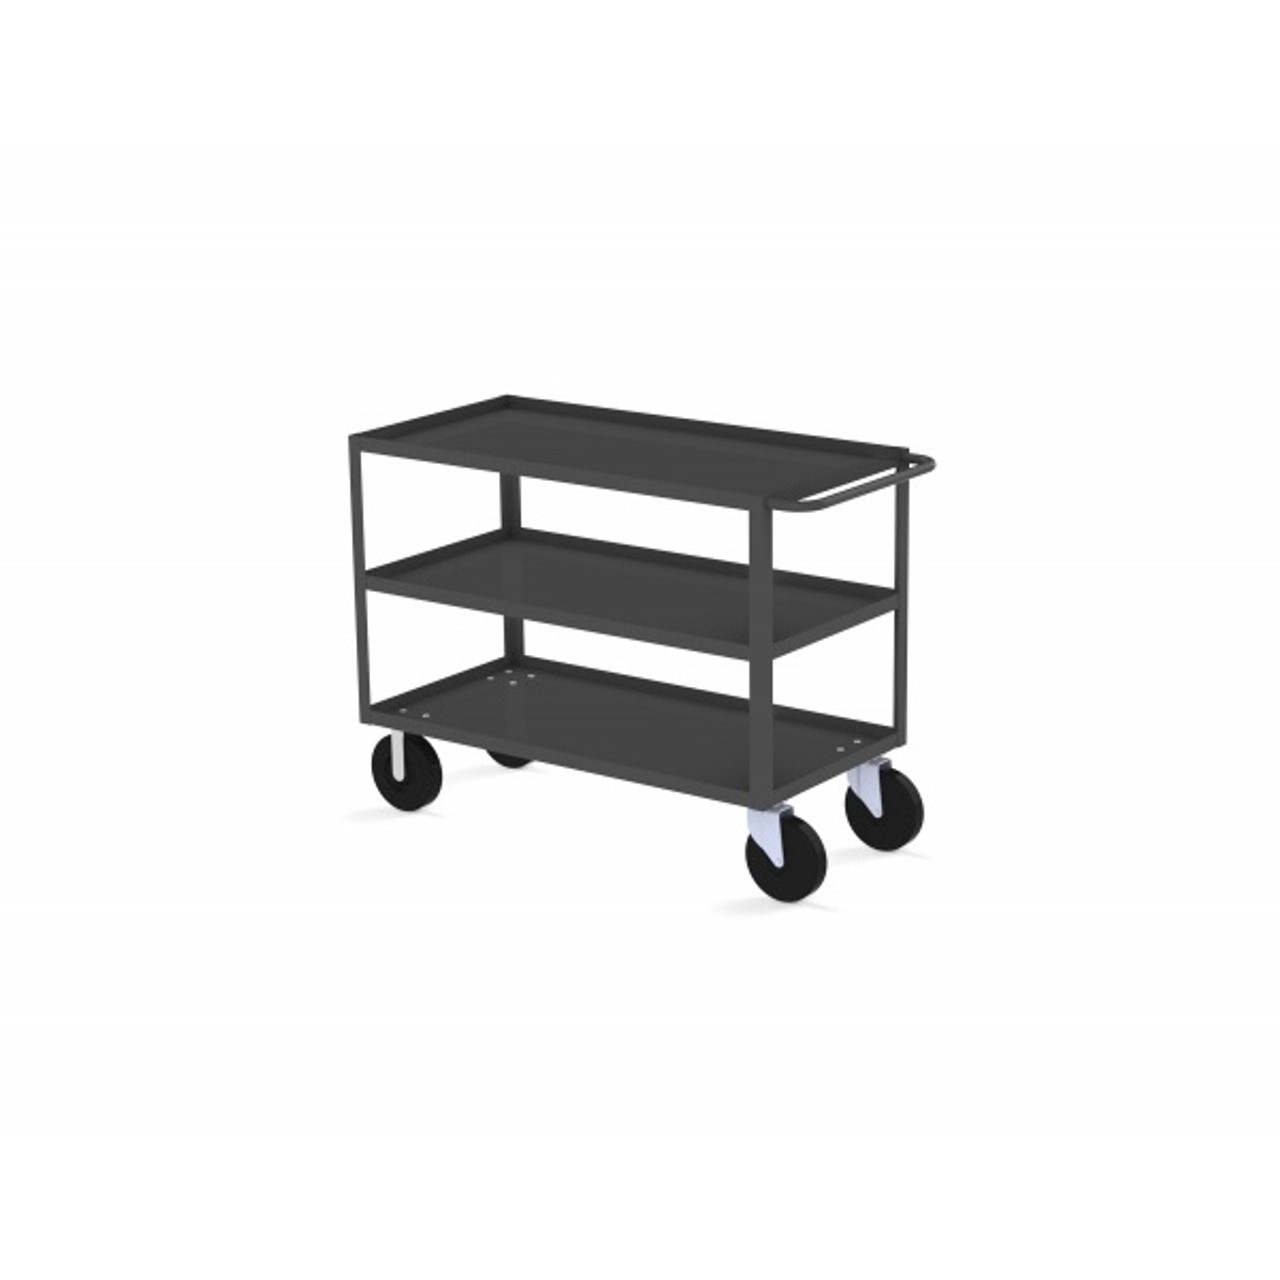 "Valley Craft Three Shelf 30 x 48"" Utility Cart, Gray with Mold On Casters"